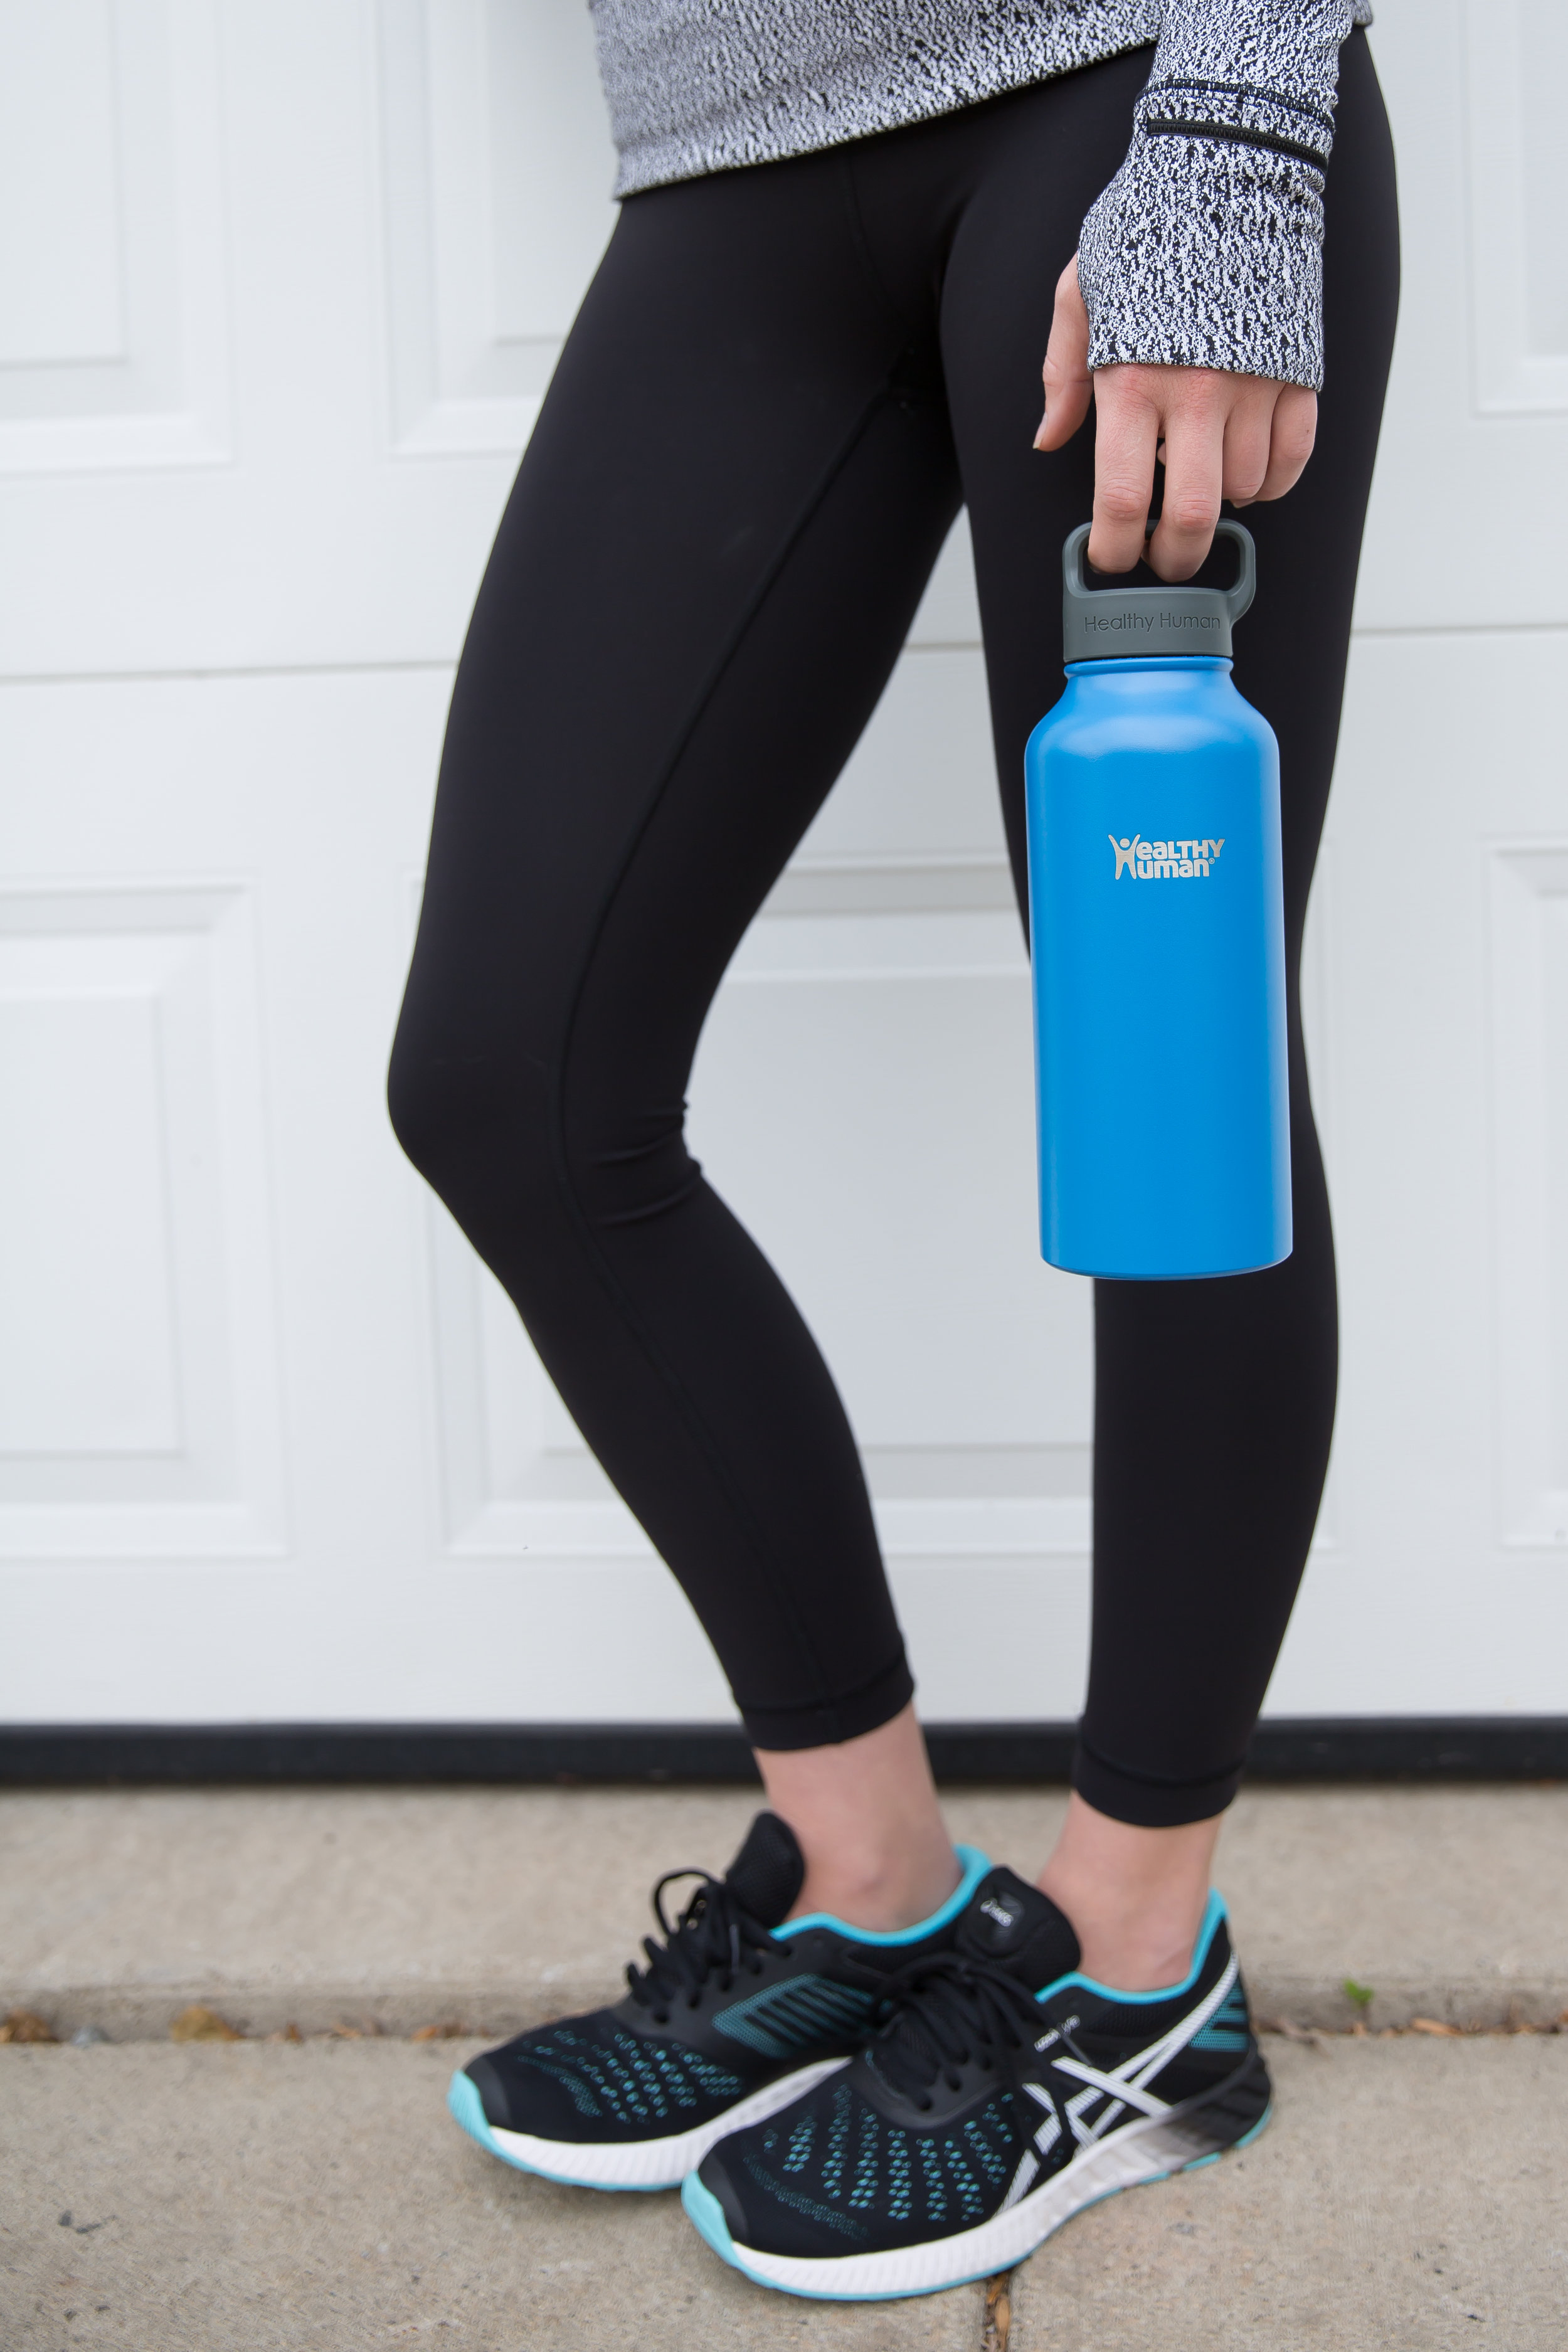 Workout water bottle, personal trainer, group fitness instructor, 21dsd coach, 21 day sugar detox, twin cities, minneapolis, st. paul